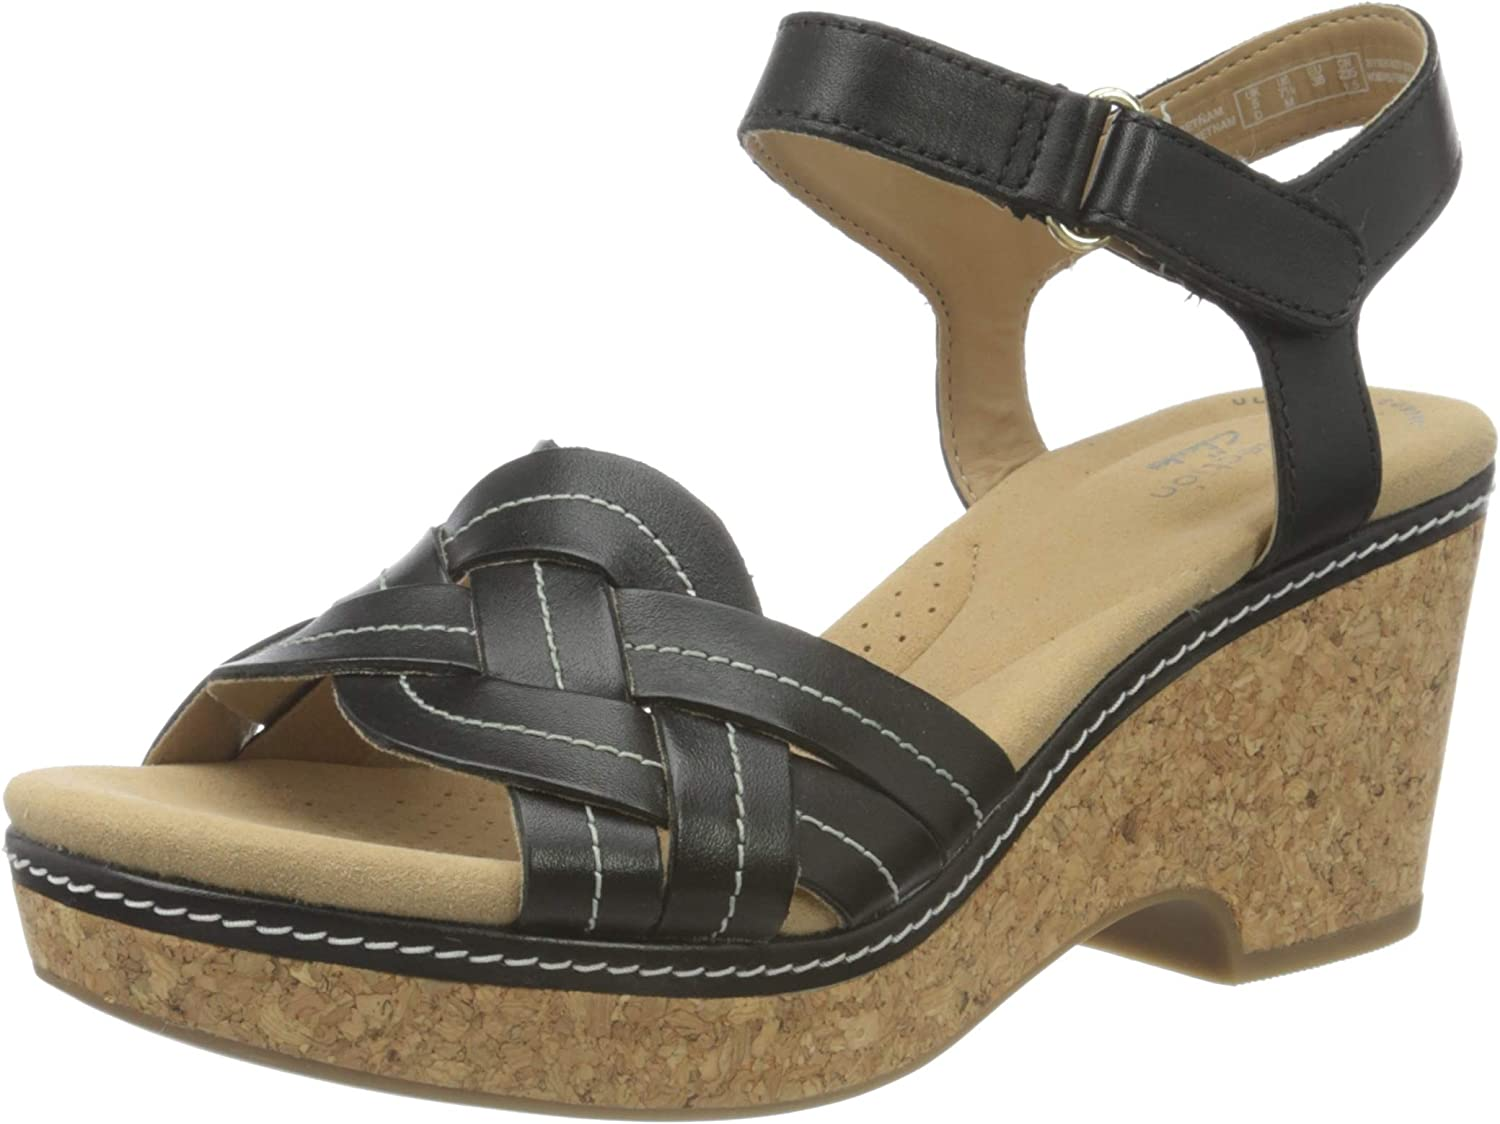 Clarks Women's Ankle-Strap Sandal Max 86% OFF Heeled Be super welcome